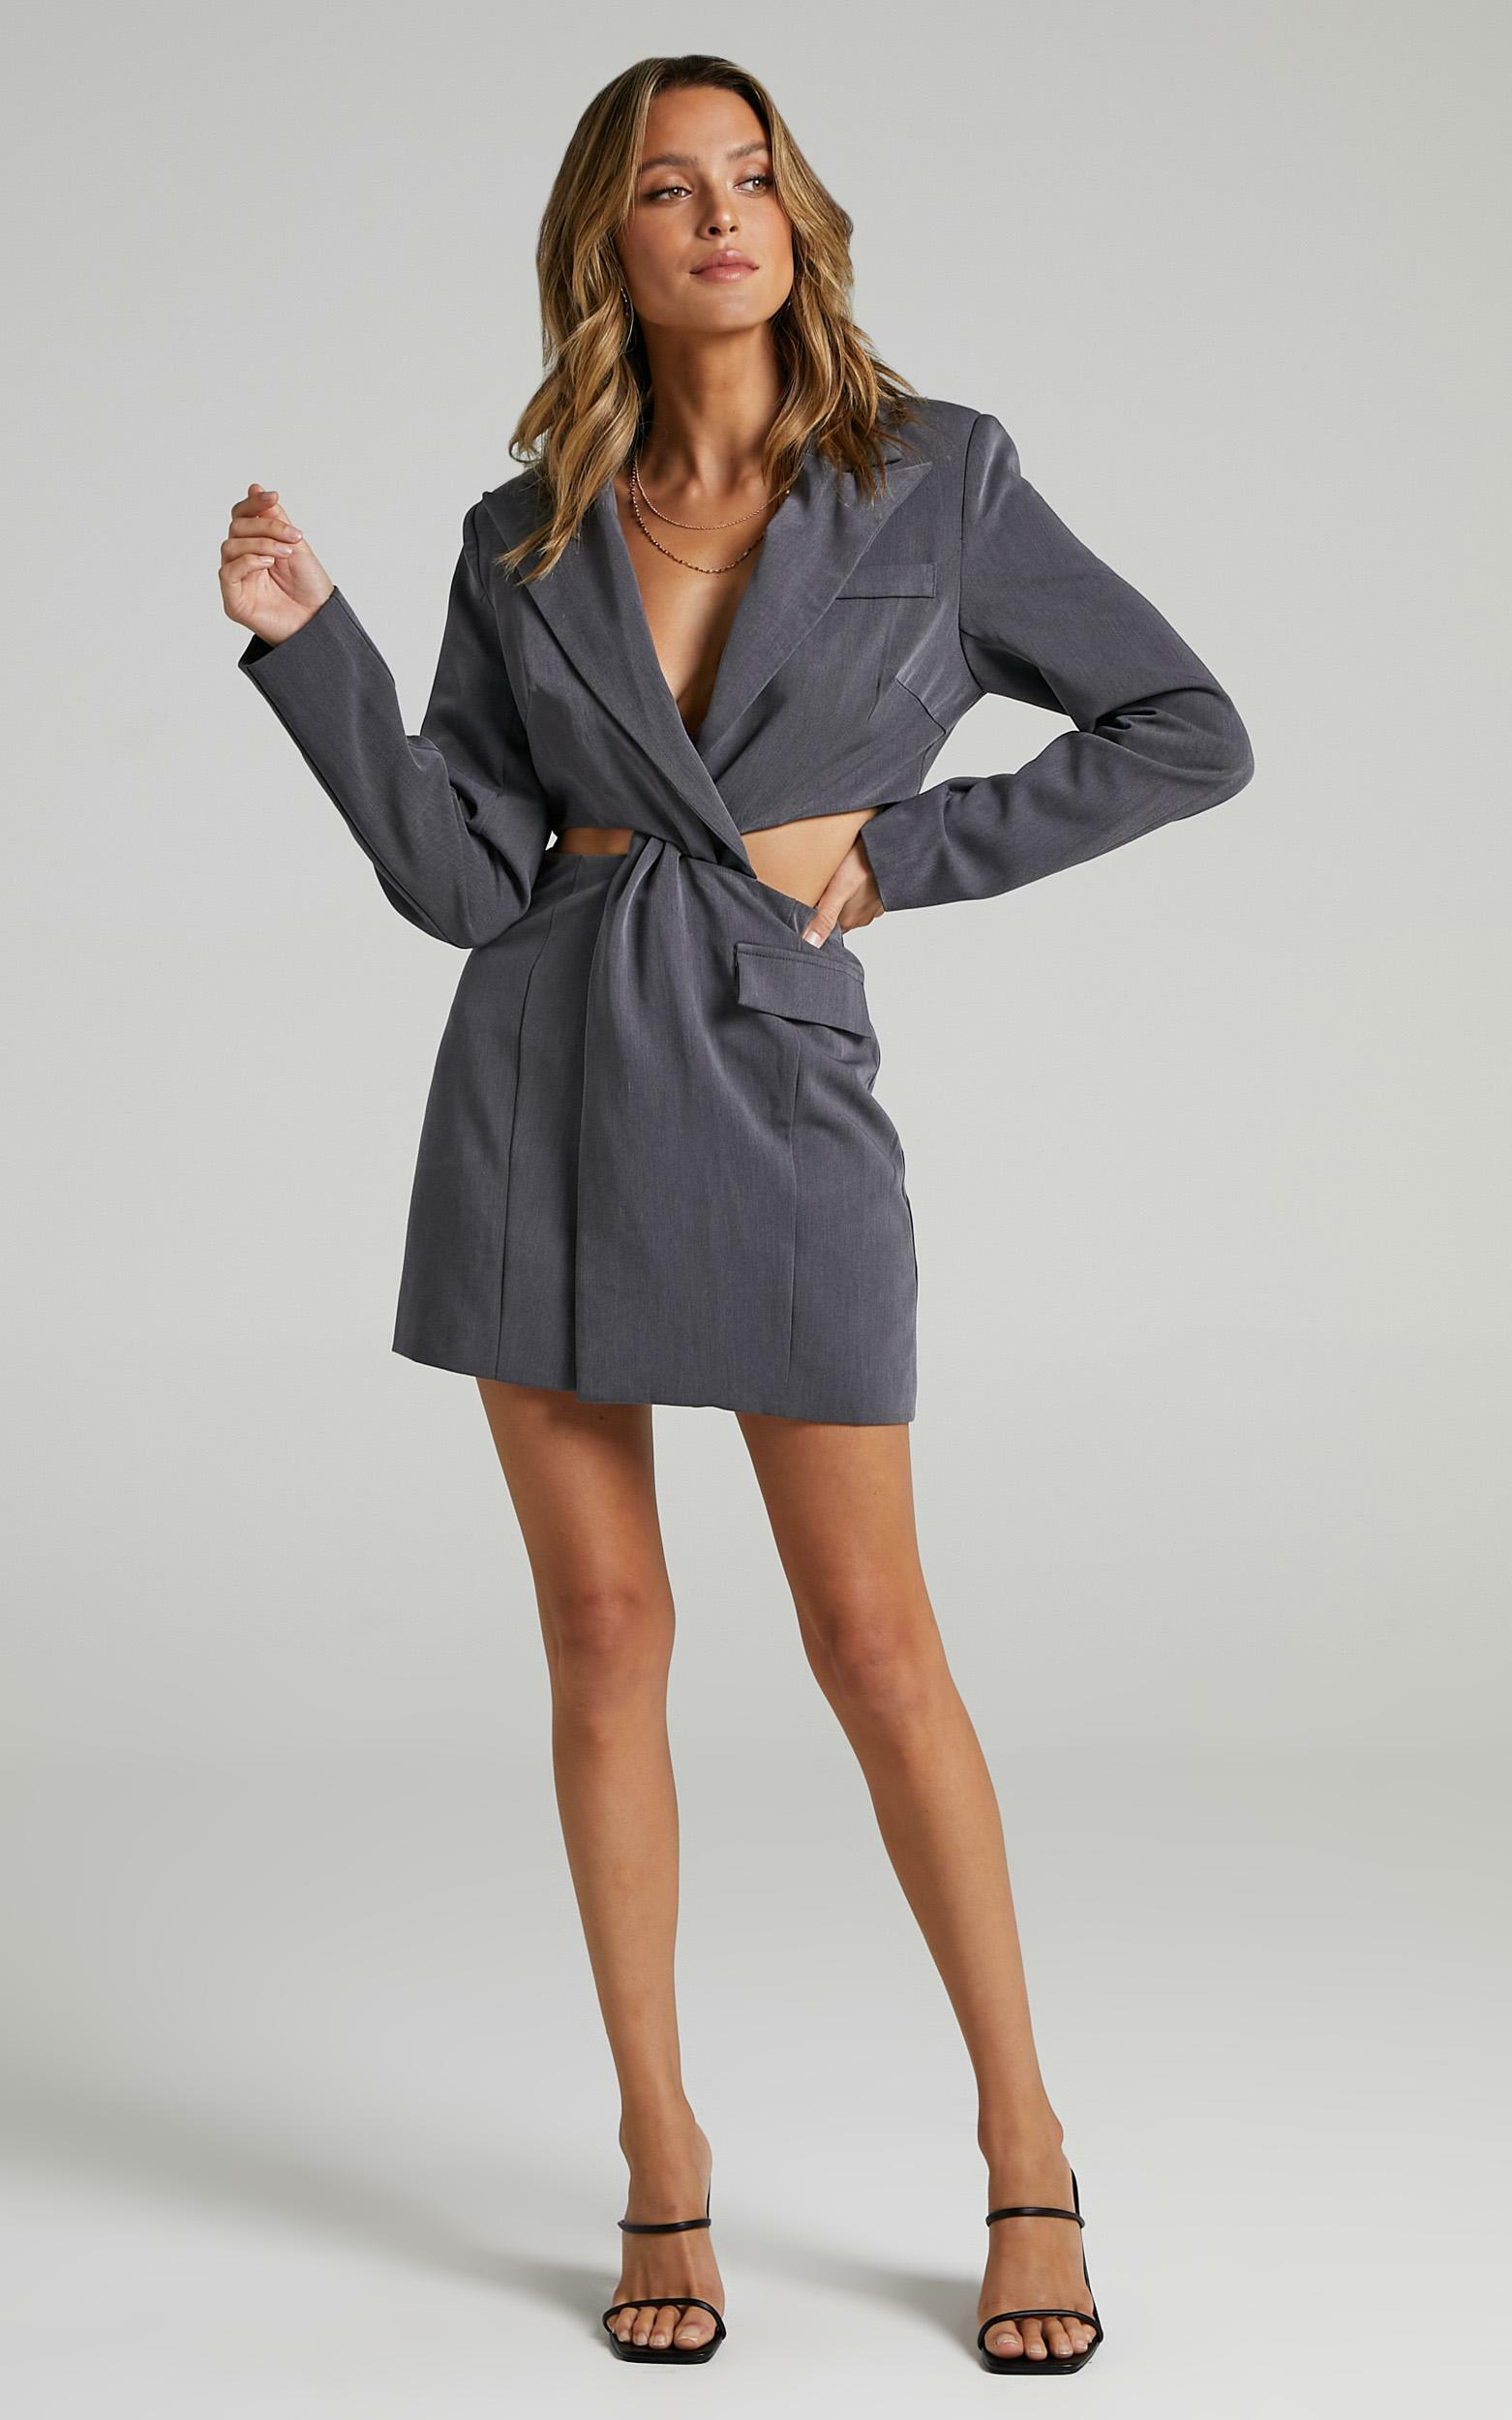 Amina Blazer Dress in Charcoal - 06, GRY1, hi-res image number null